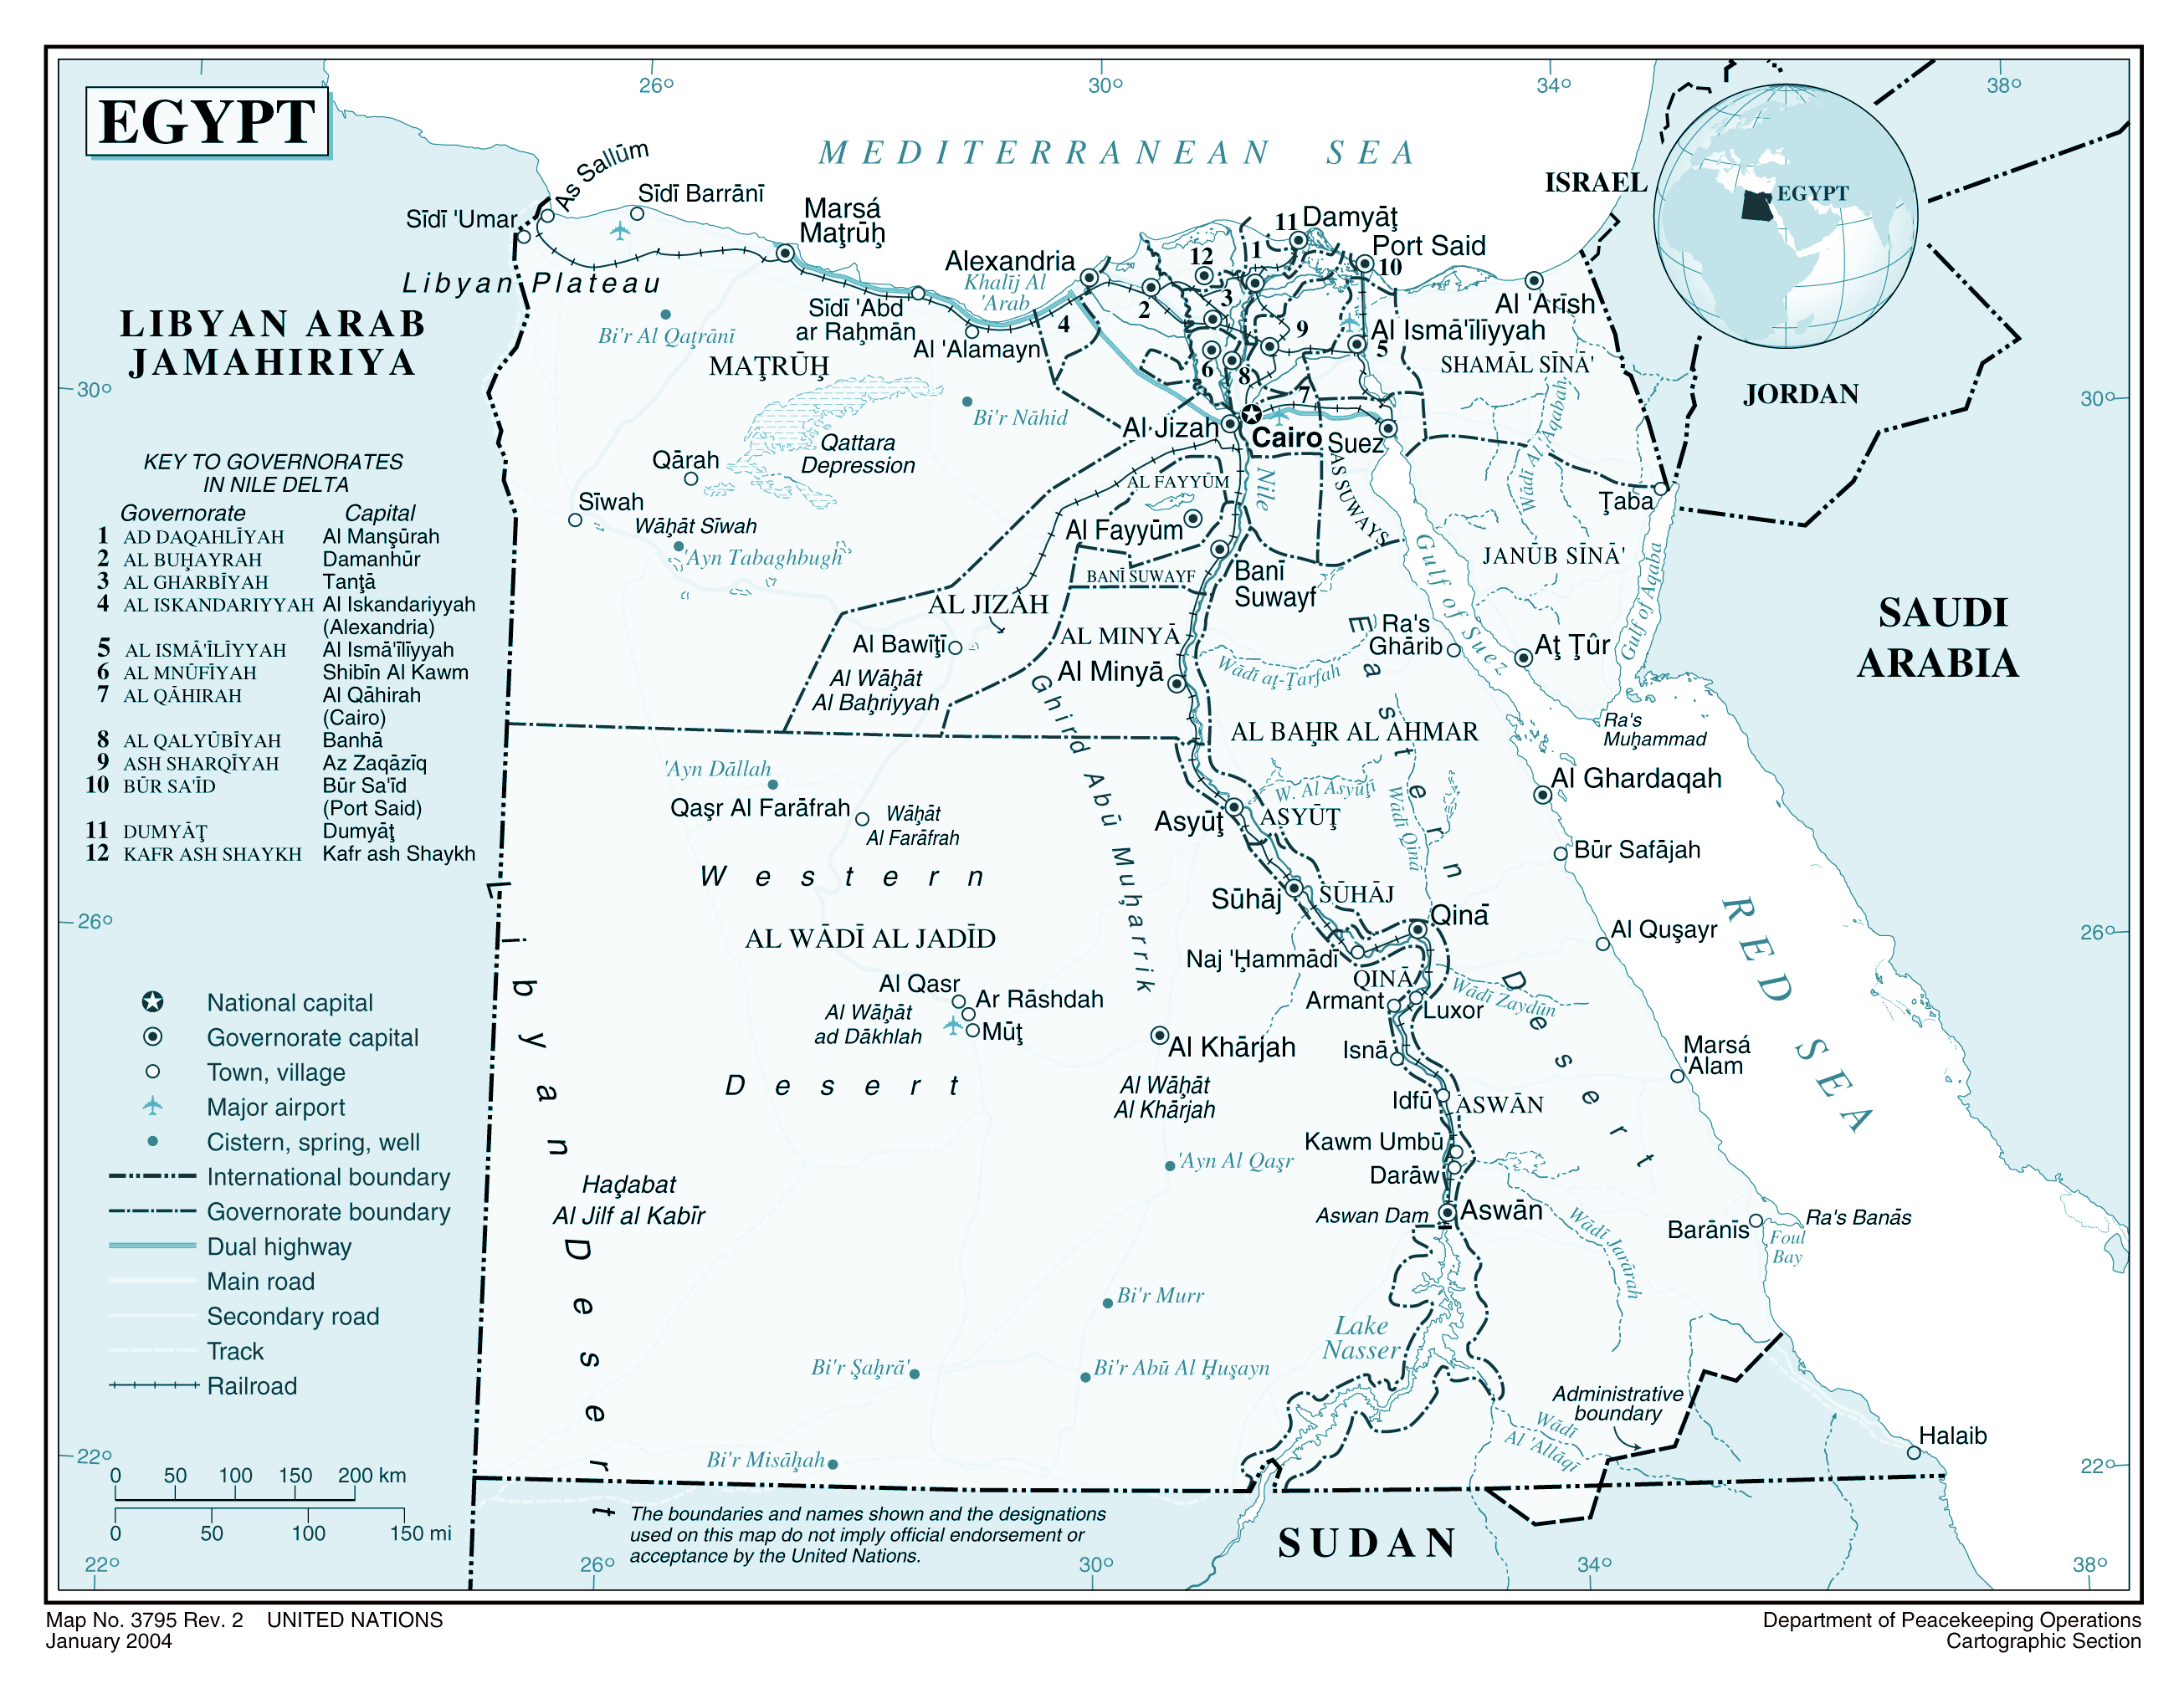 Large Detailed Political And Administrative Map Of Egypt With - Map of egypt's major cities